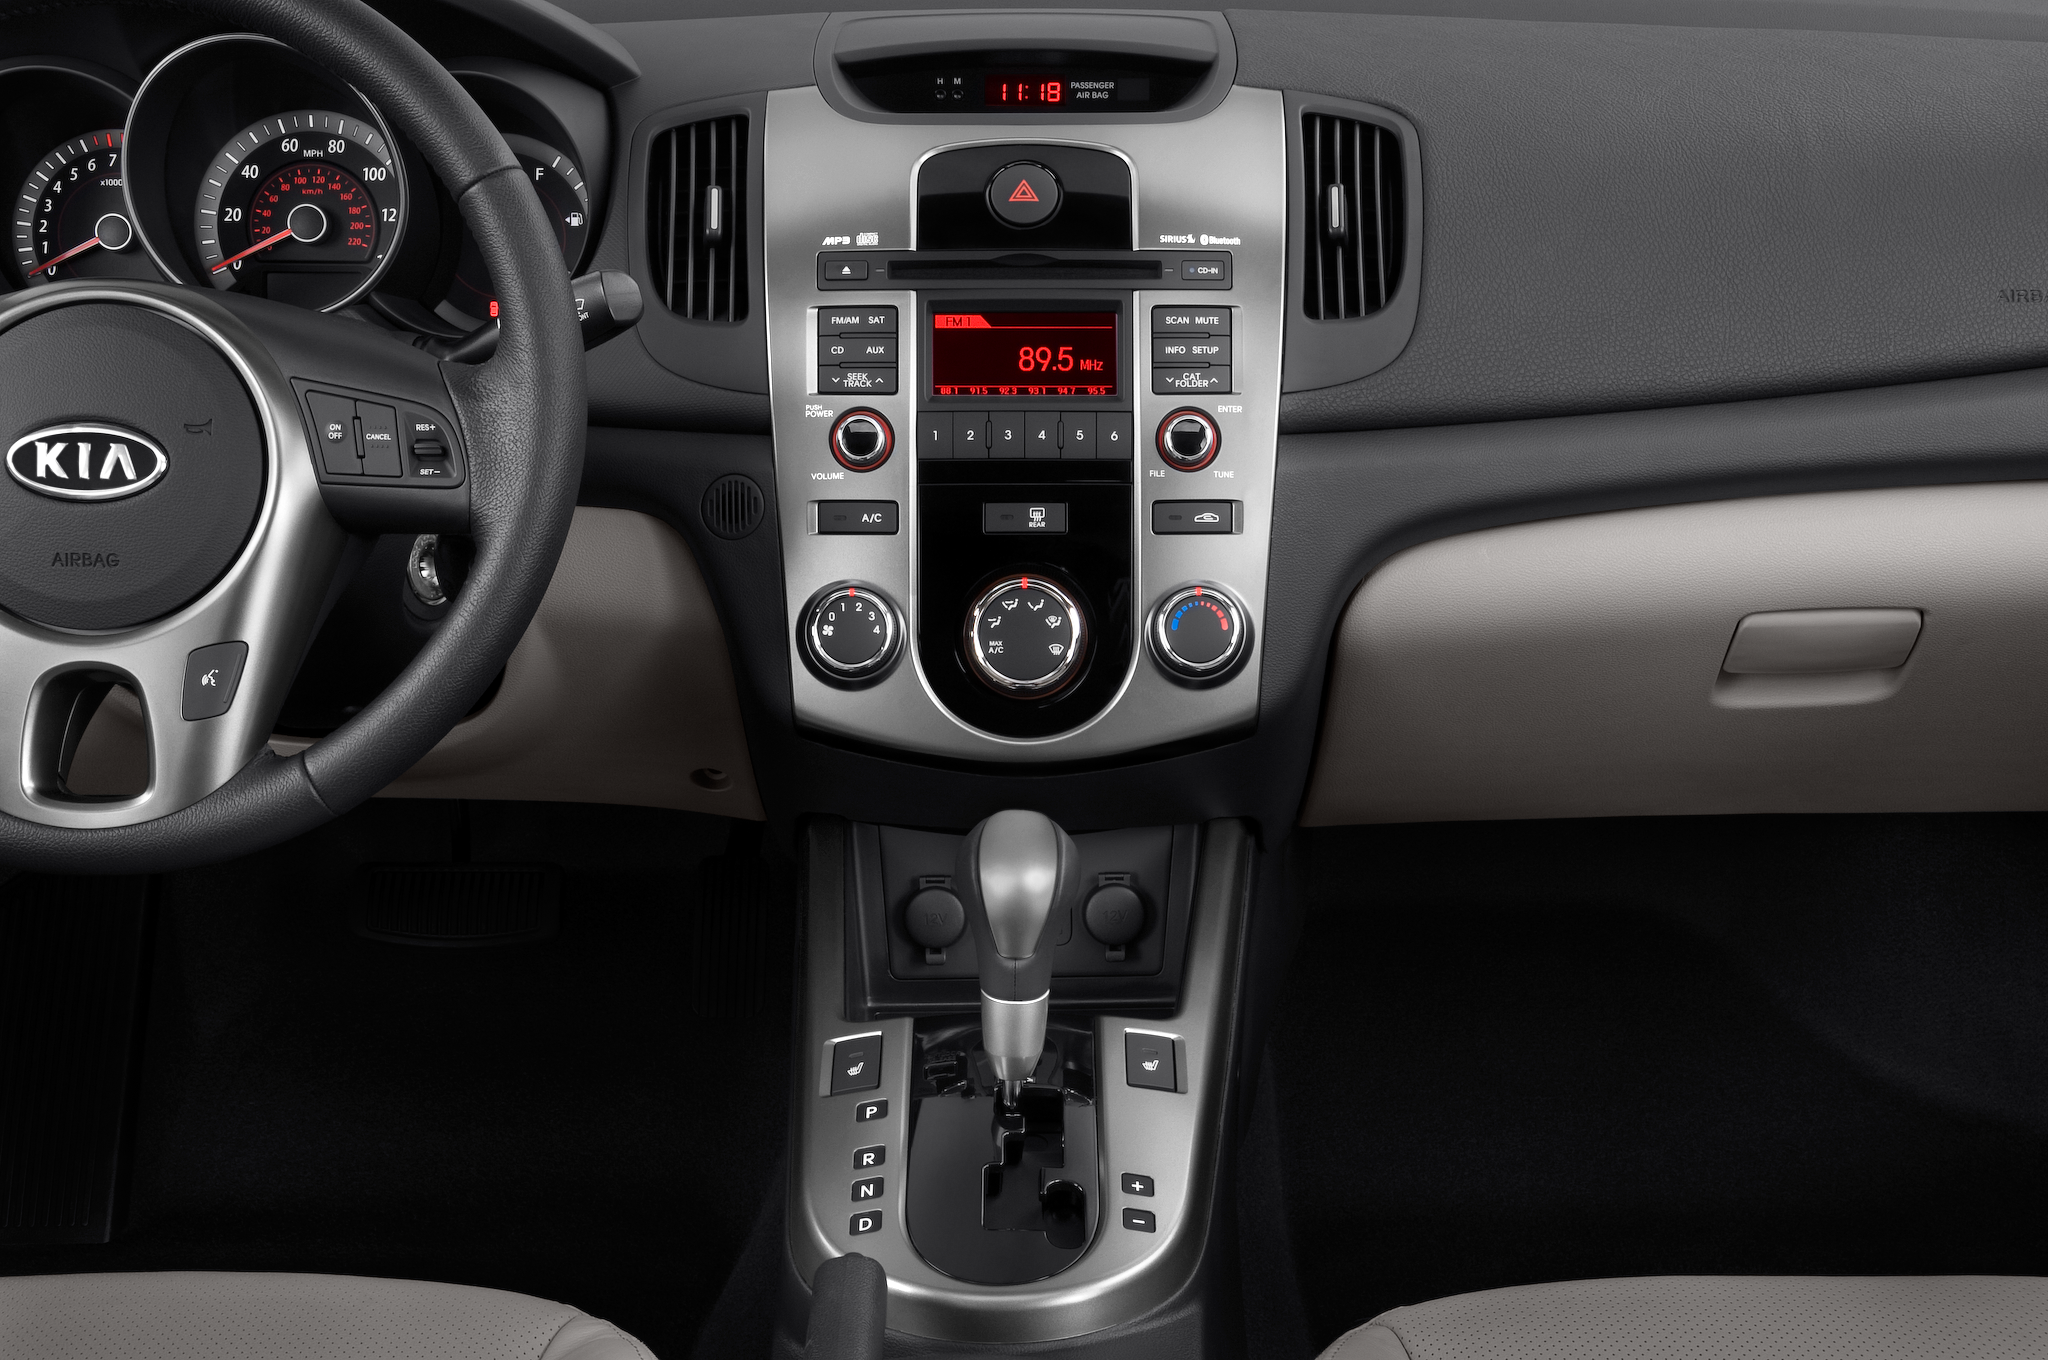 2010 Kia Forte Manual Transmission Review Wiring Diagram \u2022 2003 Kia  Rio Engine Diagram Kia Soul Transmission Diagram